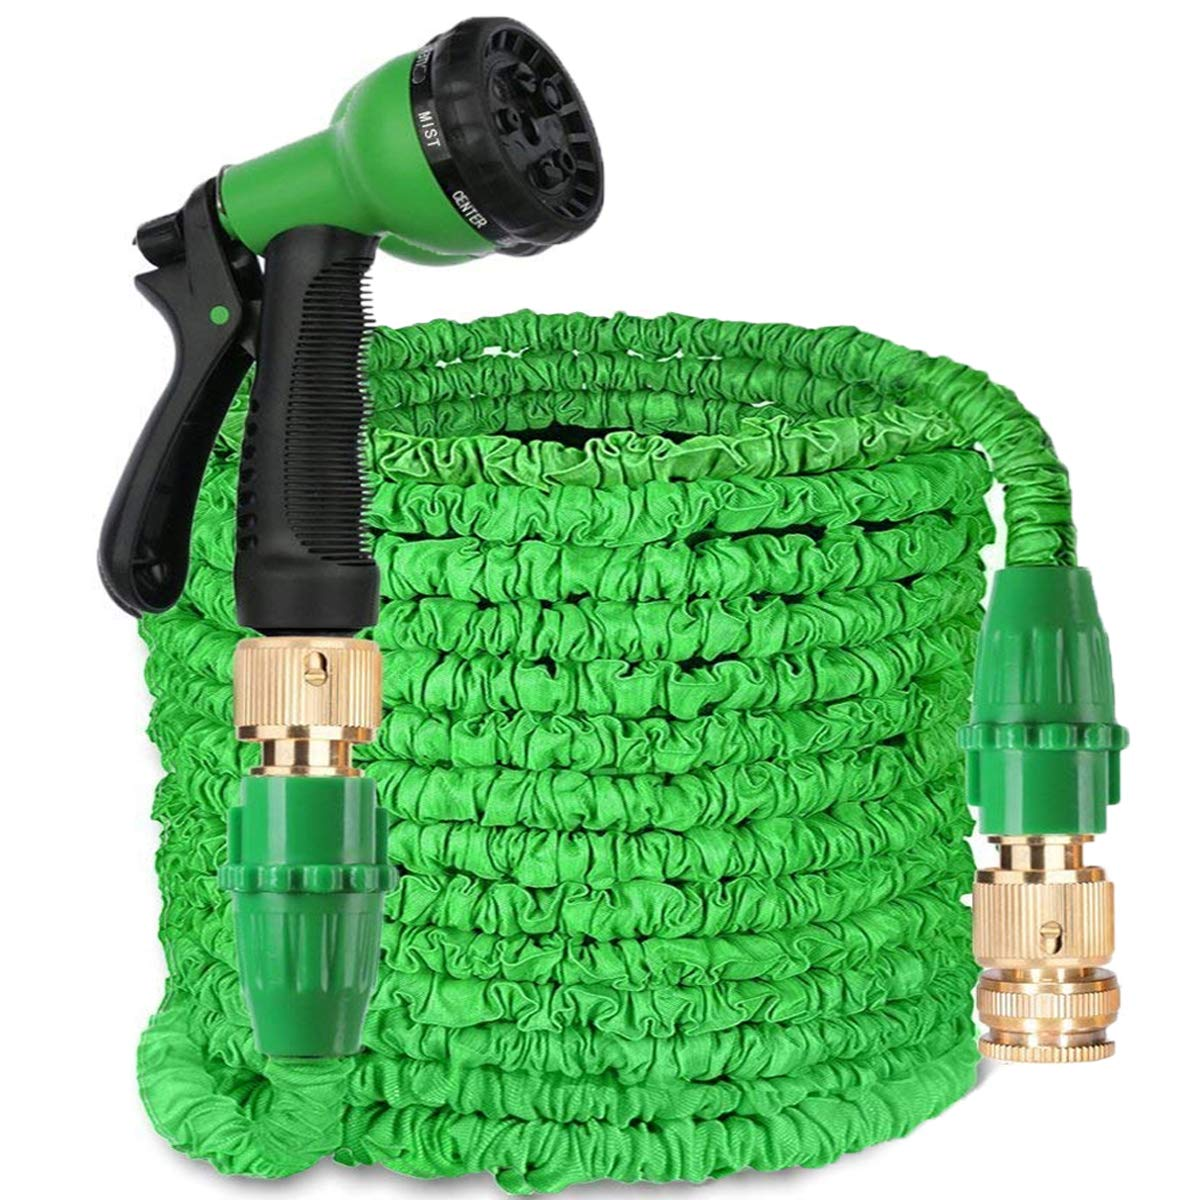 AIGUMI Garden Hose Pipe, 150Ft Expandable Garden Hose {IMPROVED}Magic Water Hose Pipe Double Latex Core with Brass Fittings & 8-pattern Spray Nozzle (Green)